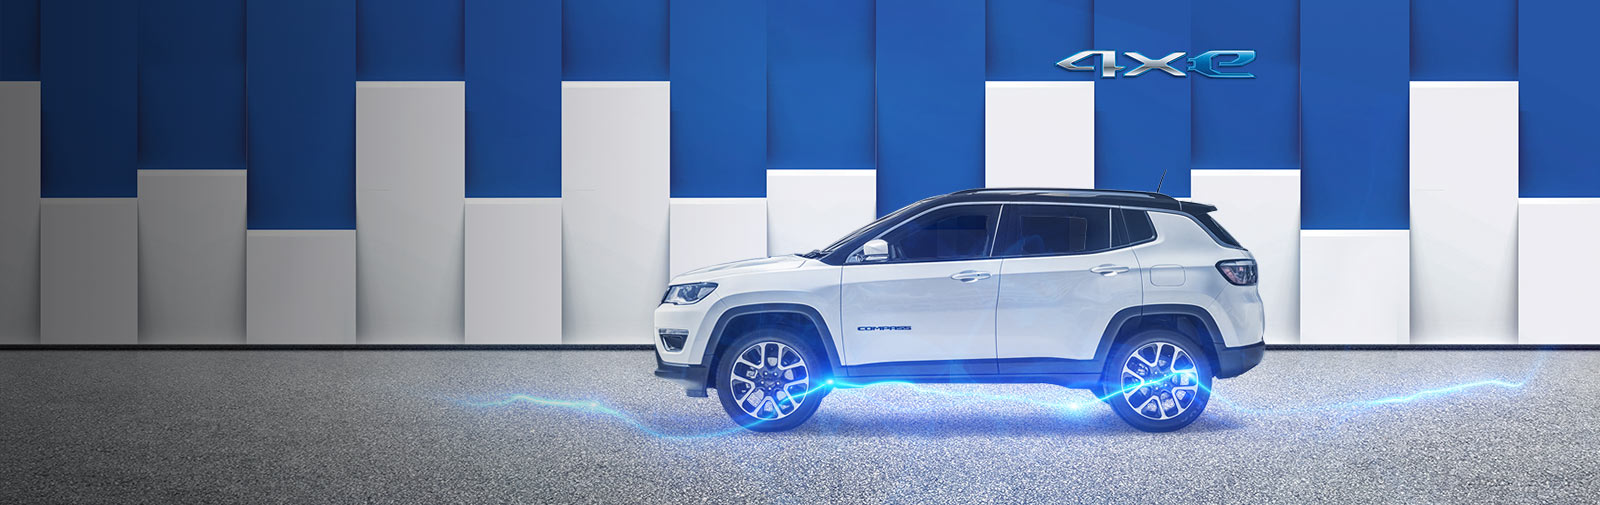 OFFRE BUSINESS: JEEP® COMPASS Hybride rechargeable